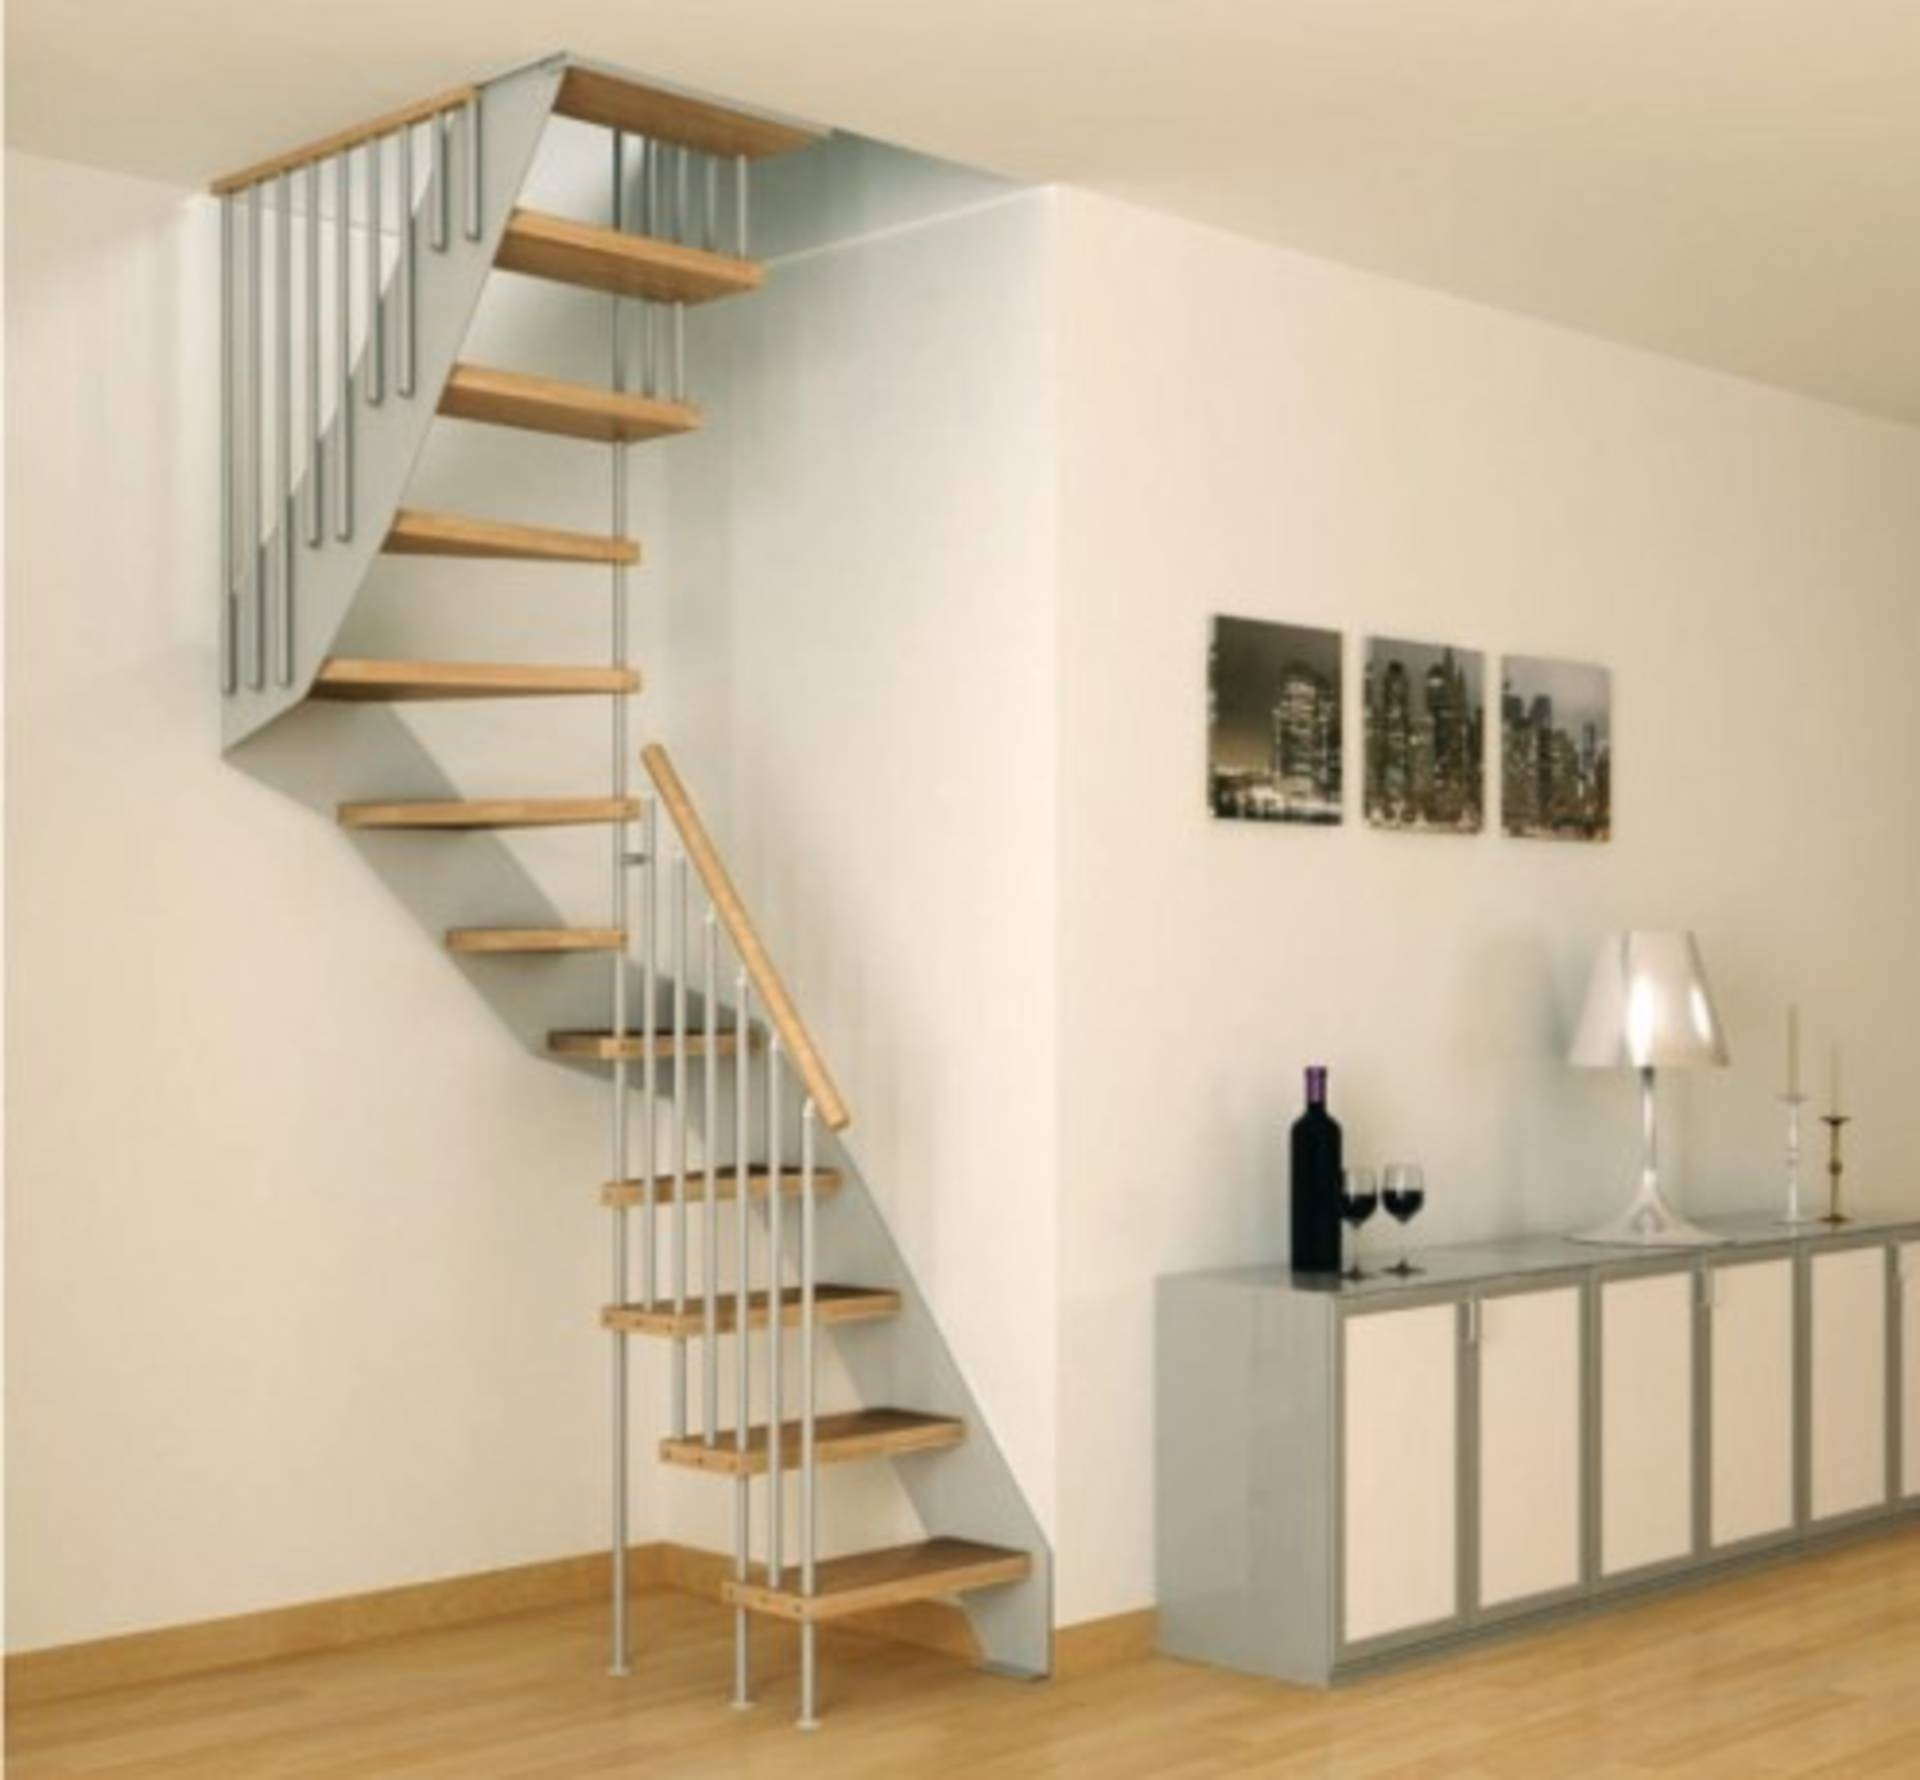 Loft With Stairs For 2020 Ideas On Foter | Designs Of Stairs Inside Small House | Stone Tiles | Decorating Ideas | Stair Treads | Space | Staircase Makeover